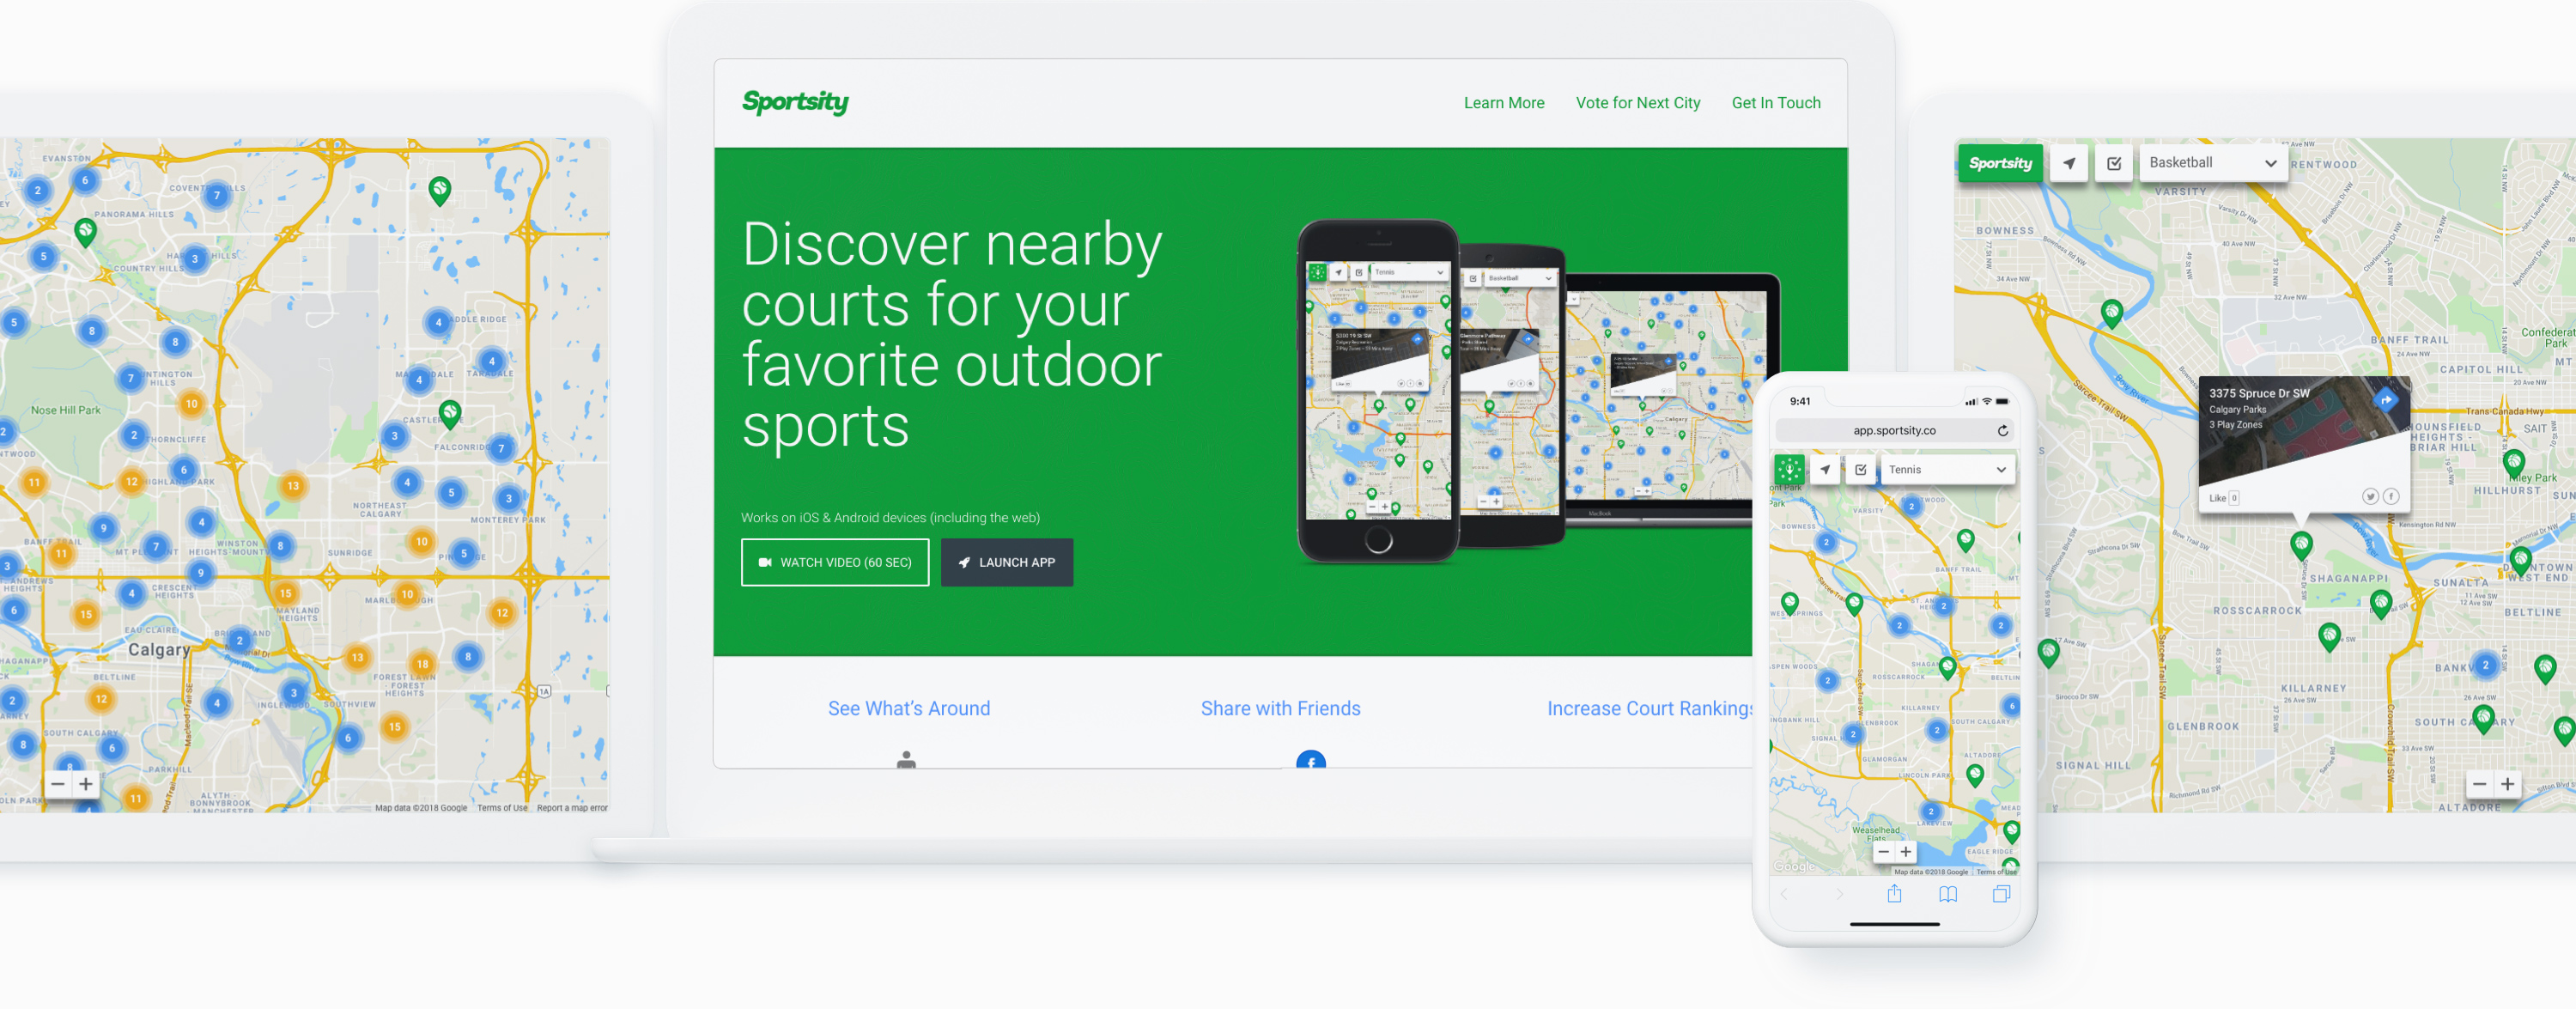 Responsive Mockup of Sportsity